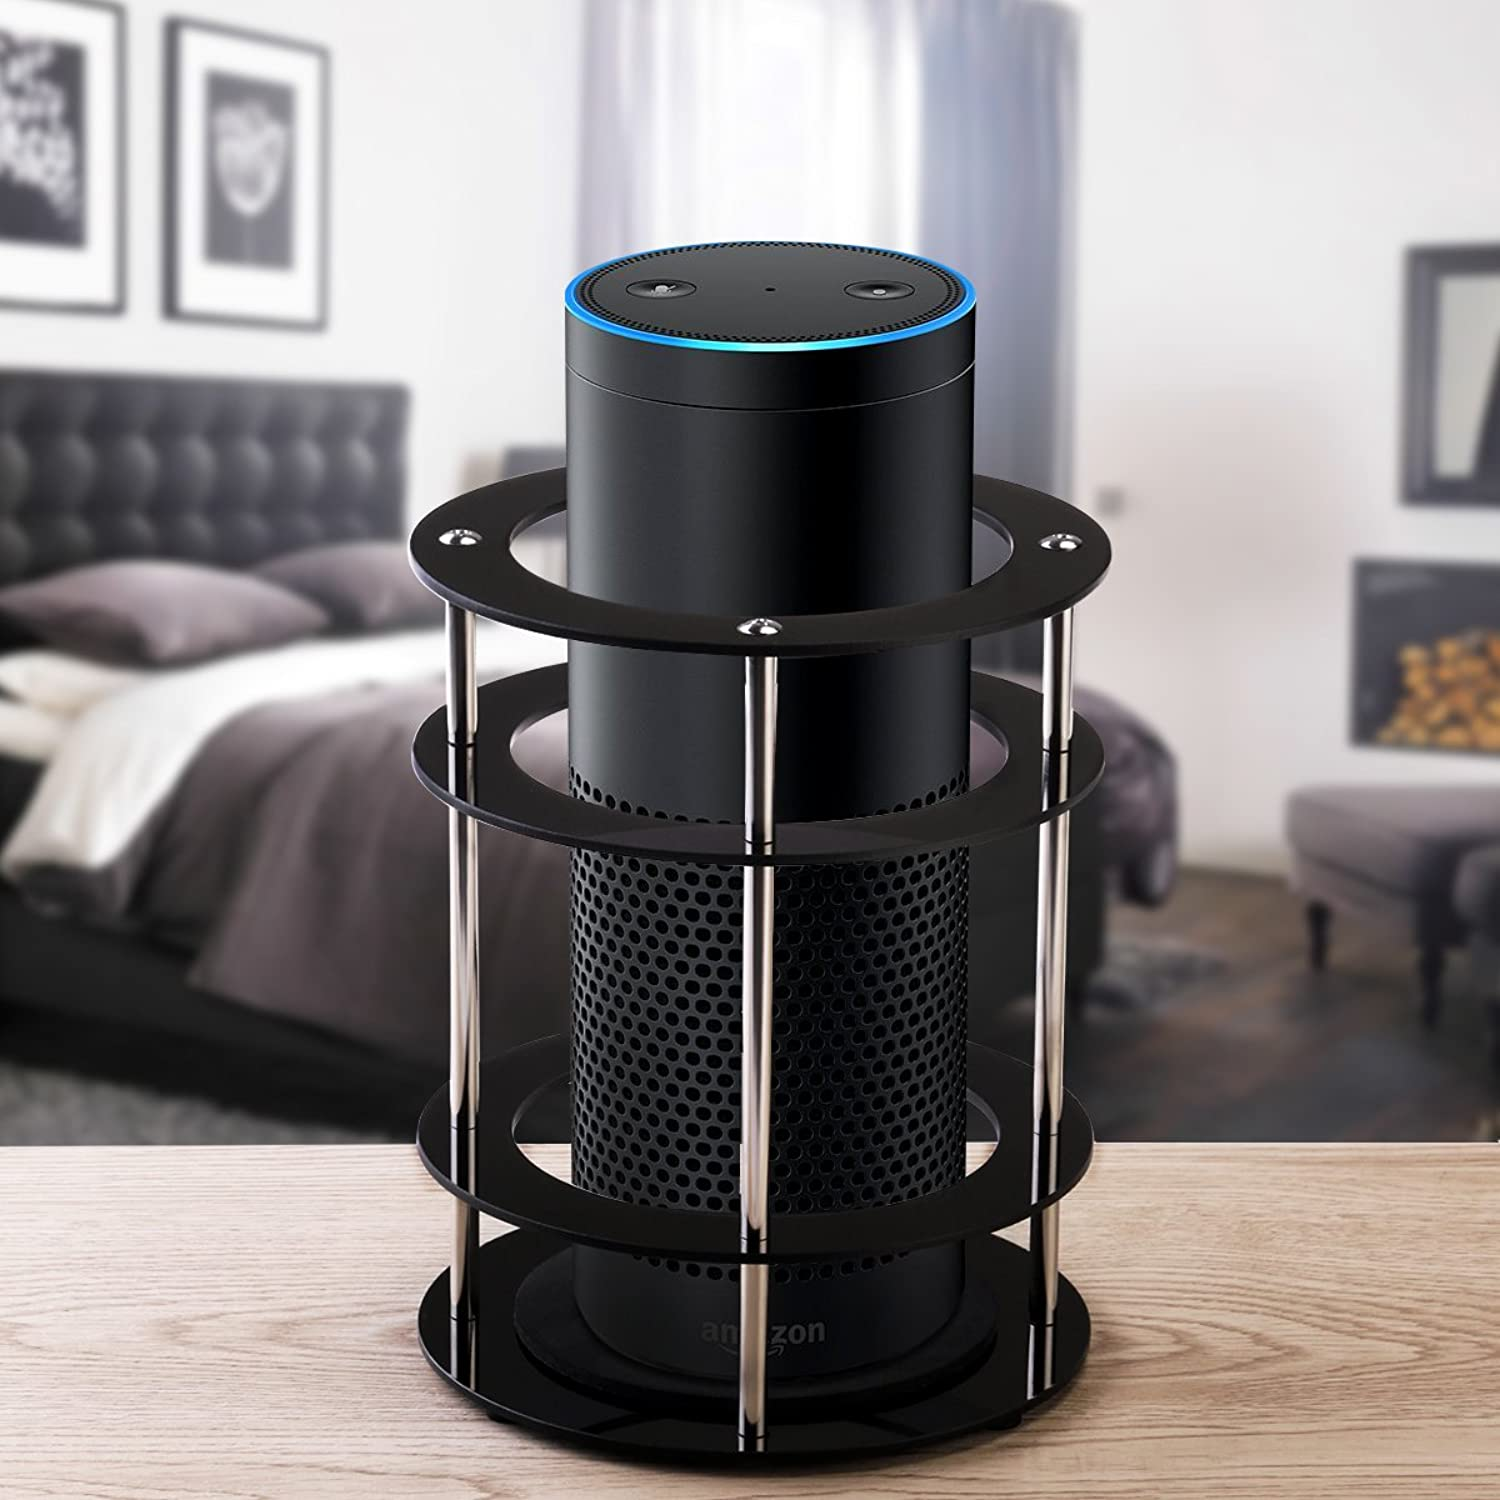 Stand for Amazon Echo, Foxnovo Acrylic Speaker Guard - Predect and Stabilize Your Alexa Speaker